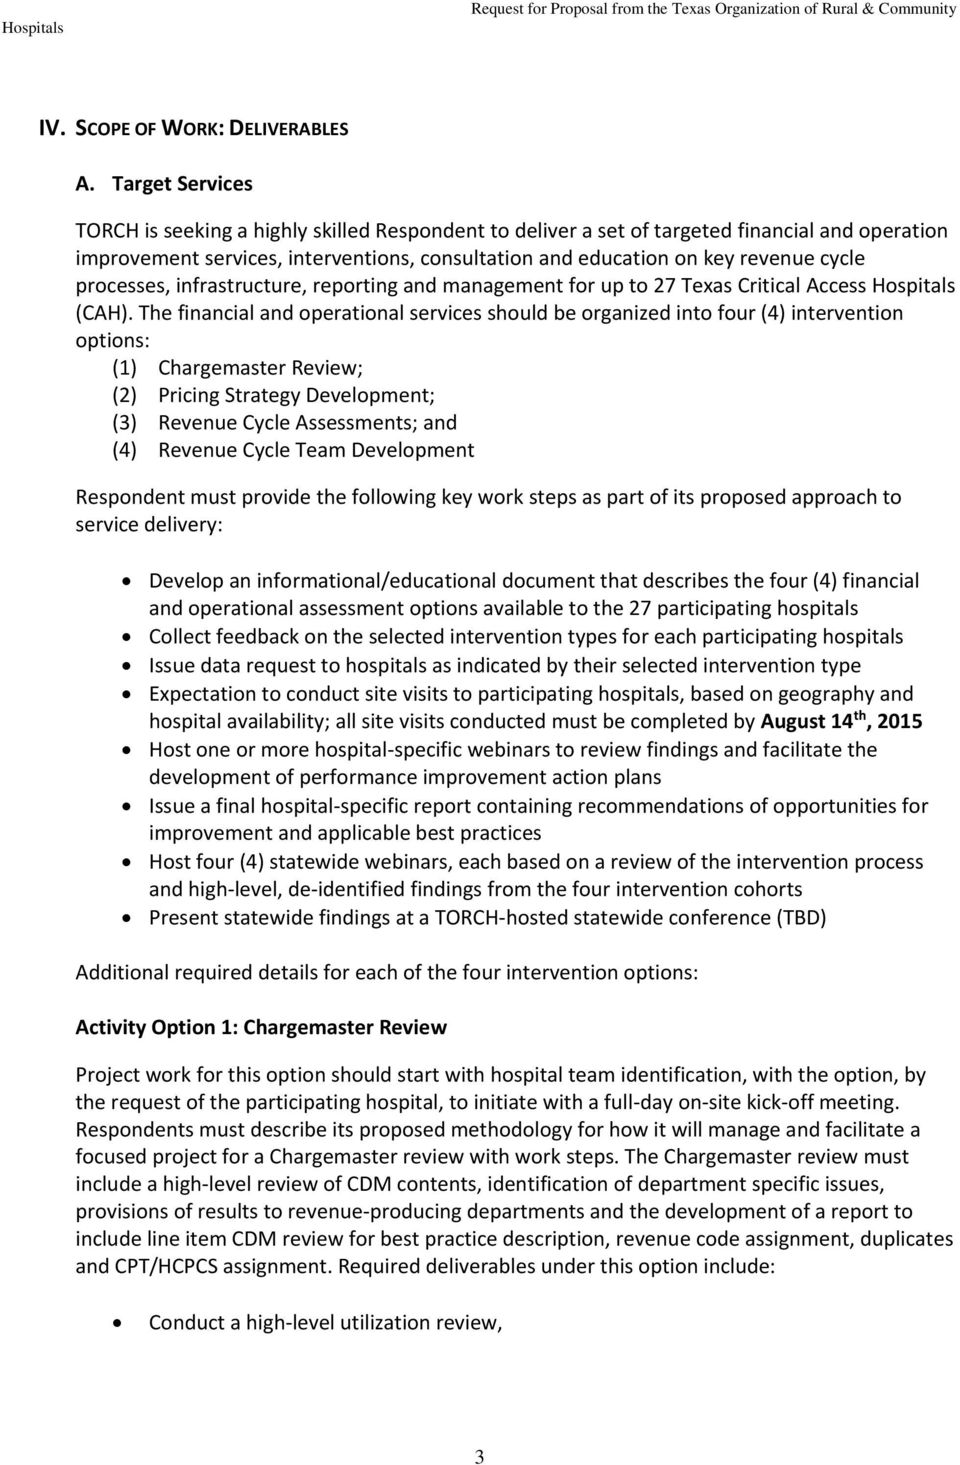 REQUEST FOR PROPOSAL (RFP) CRITICAL ACCESS HOSPITAL